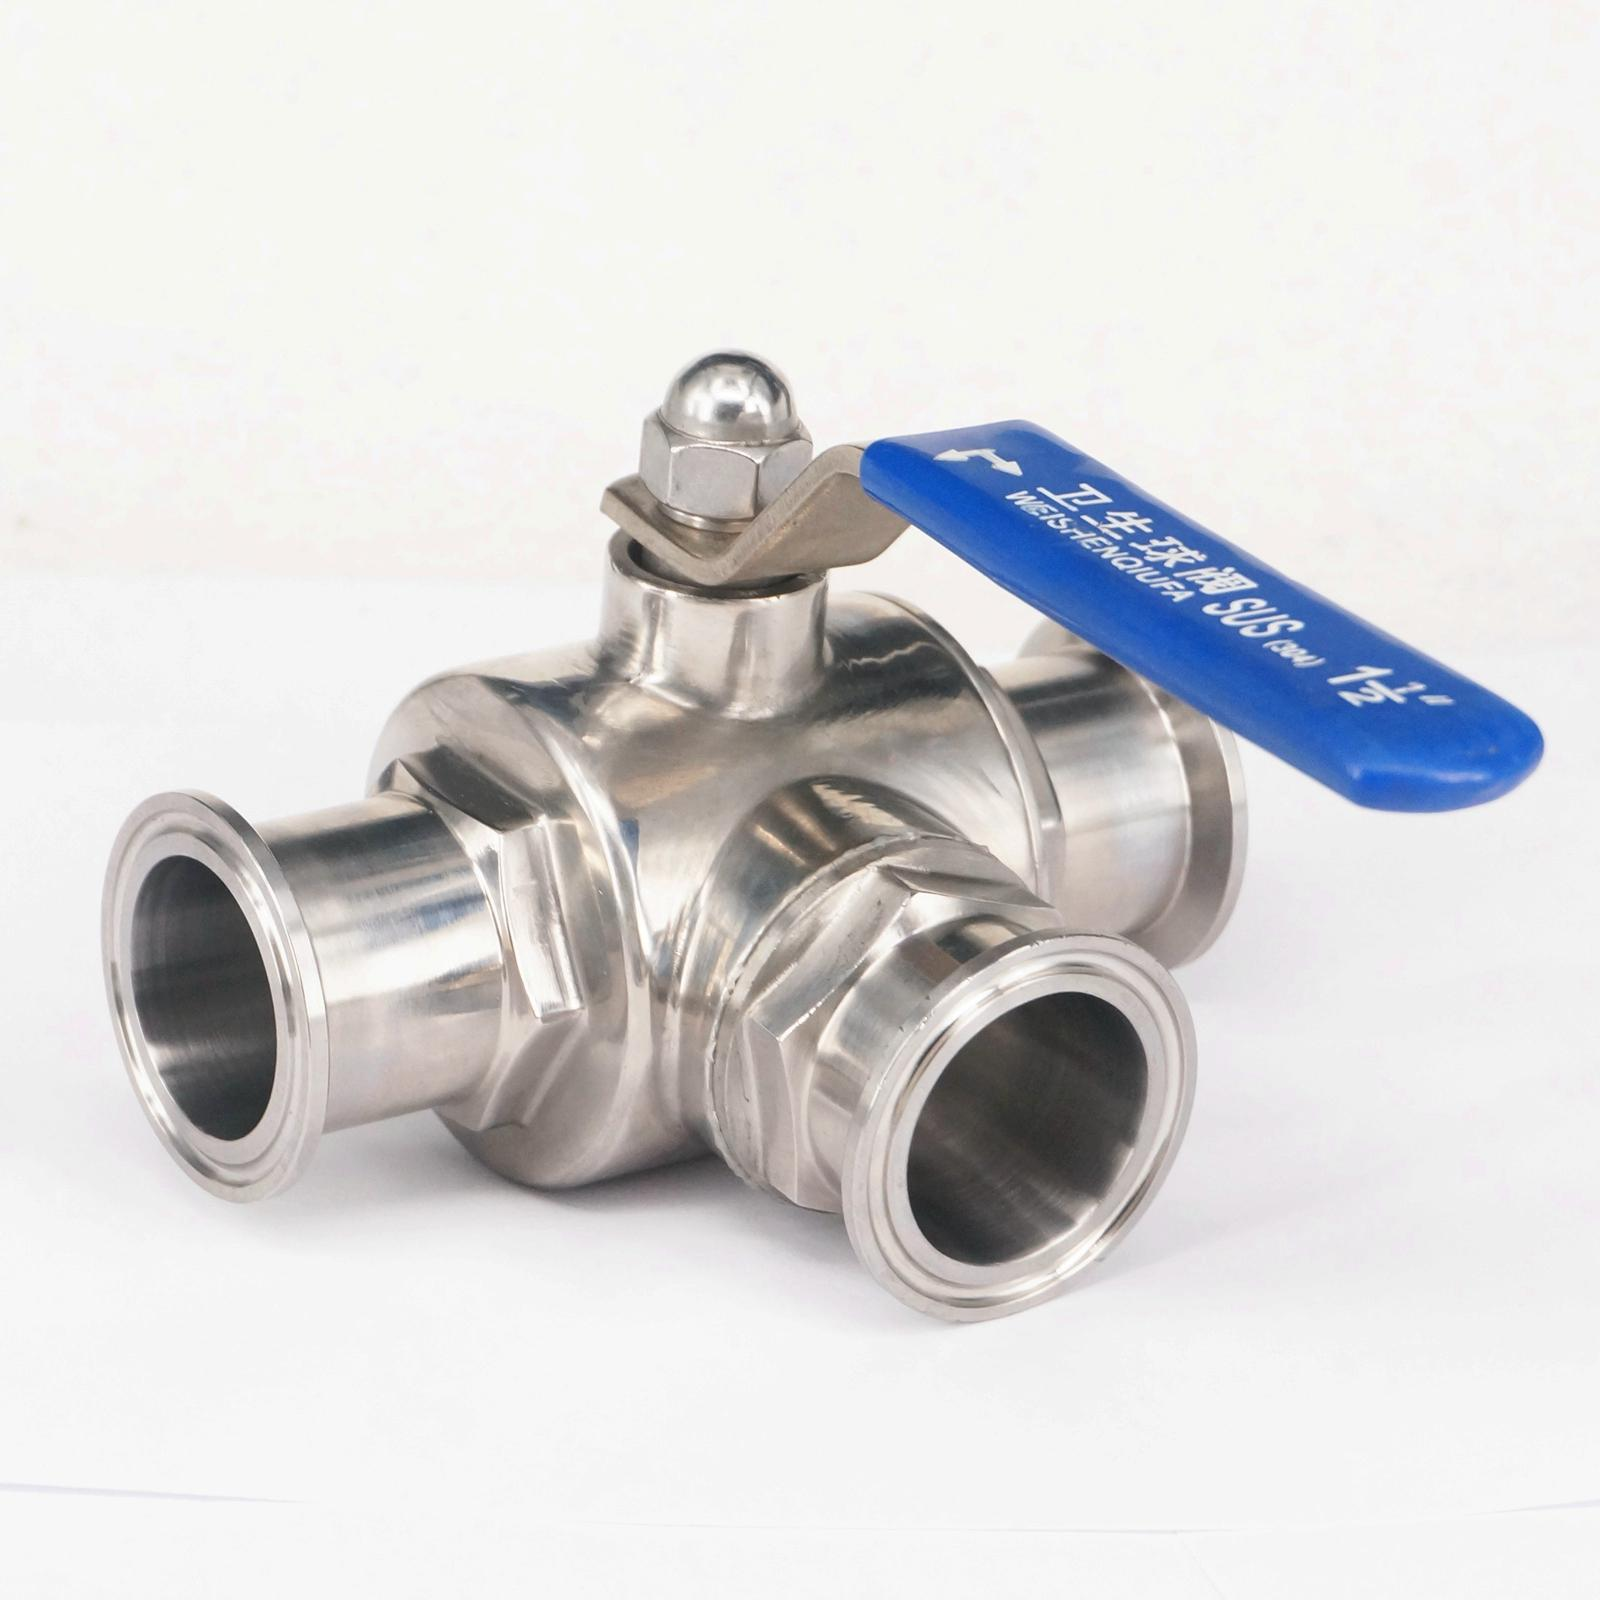 1-1/2 38mm 304 Stainless Steel Sanitary 3 Way L port Ball Valve 1.5 Tri Clamp Ferrule Type For Homebrew Diary Product 2 sanitary stainless steel ball valve 2 way 304 quick installed food grade pneumatic valve double acting straight way valve